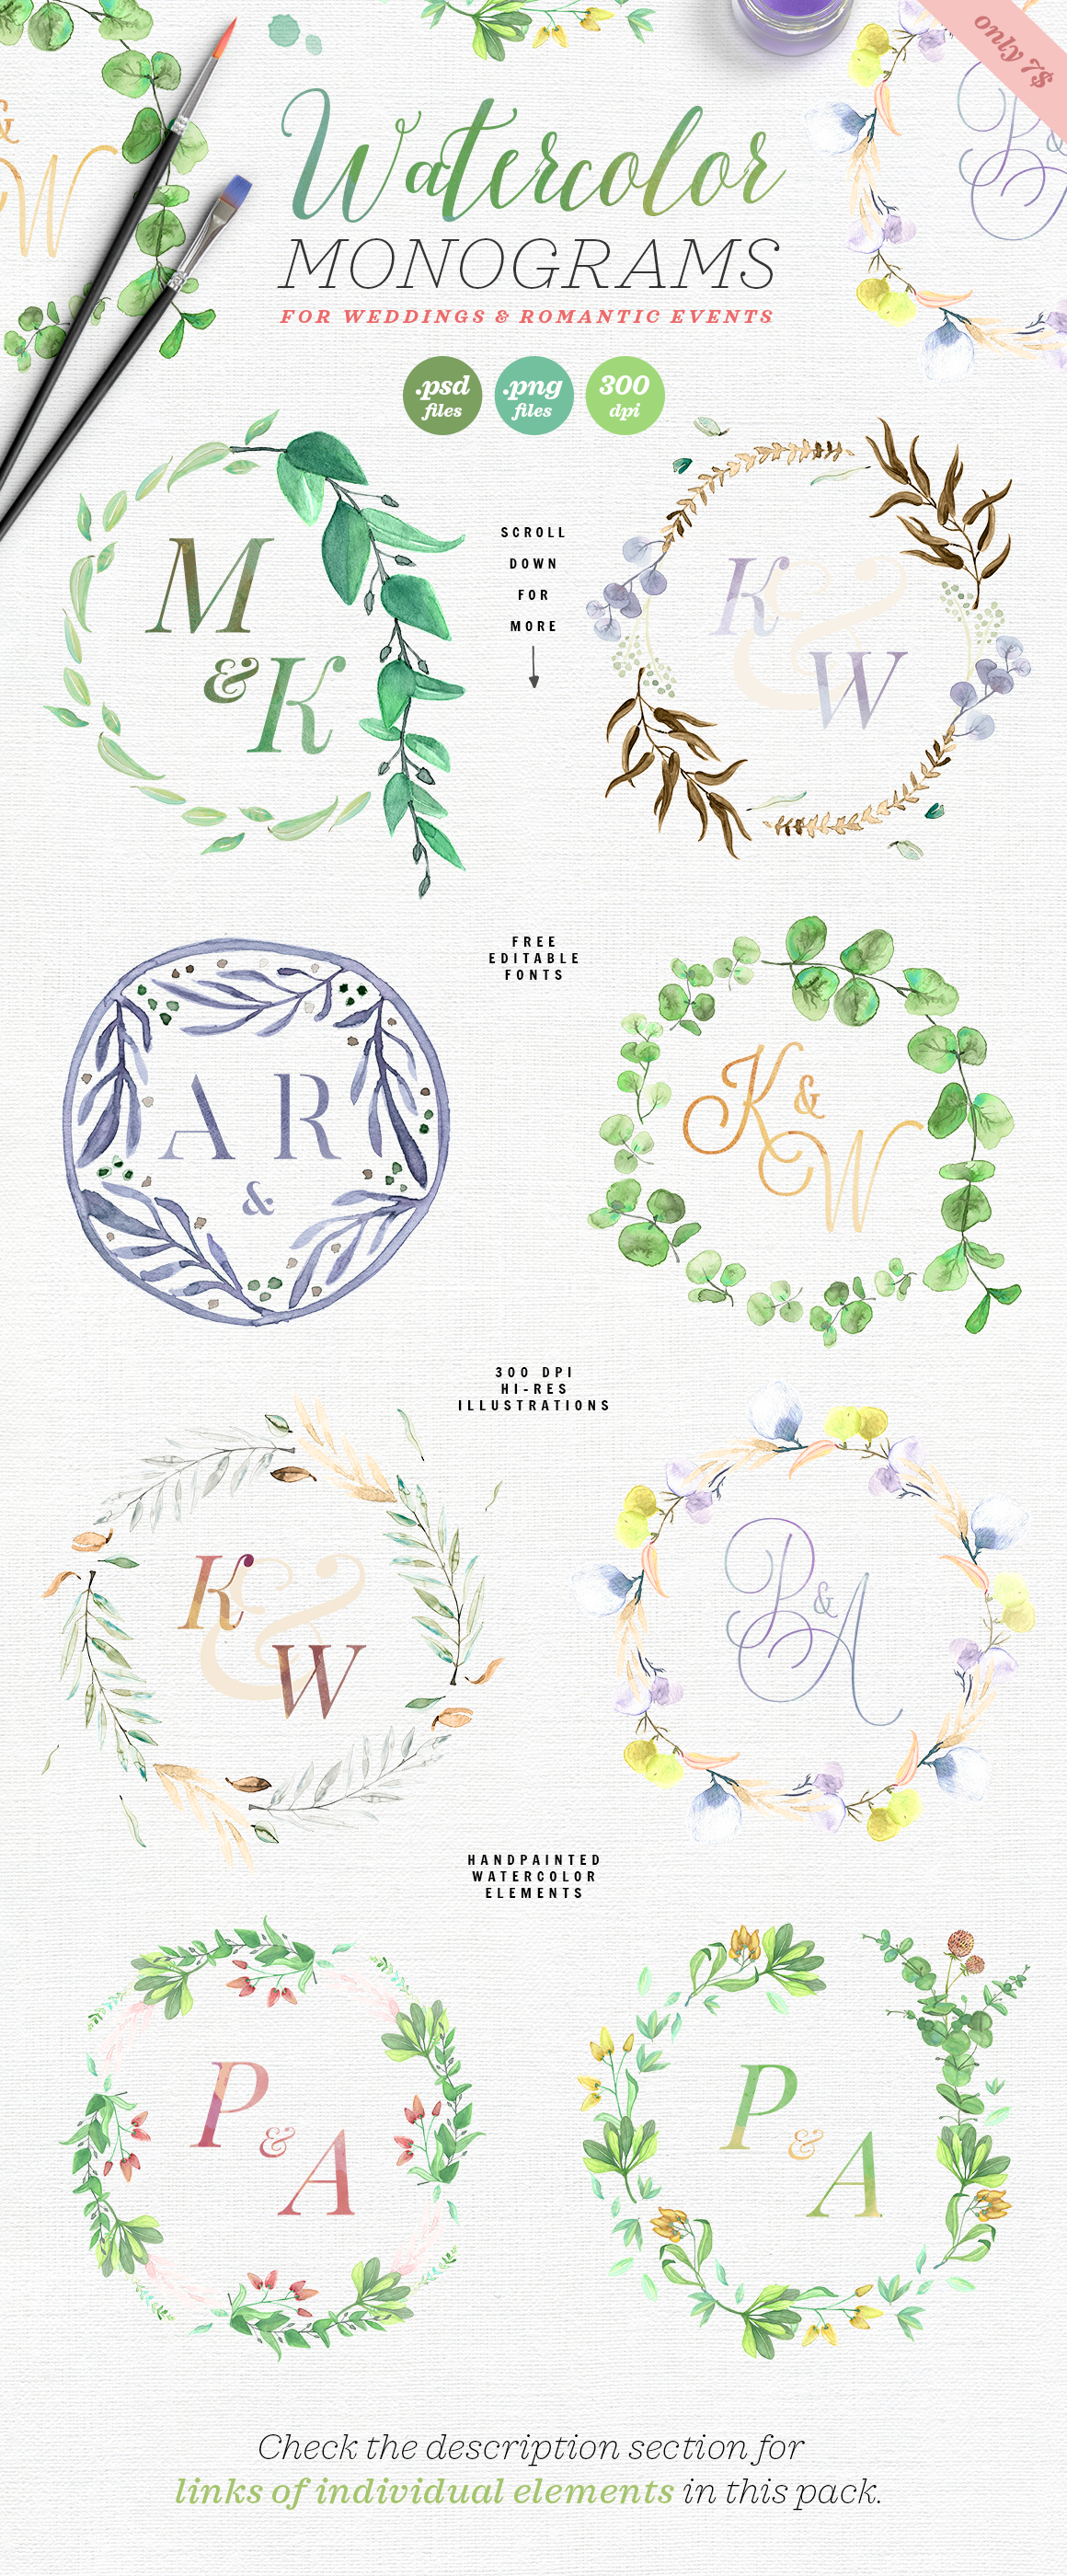 8 Watercolor Wedding Monograms I Graphic Objects By lavie1blonde - Image 2